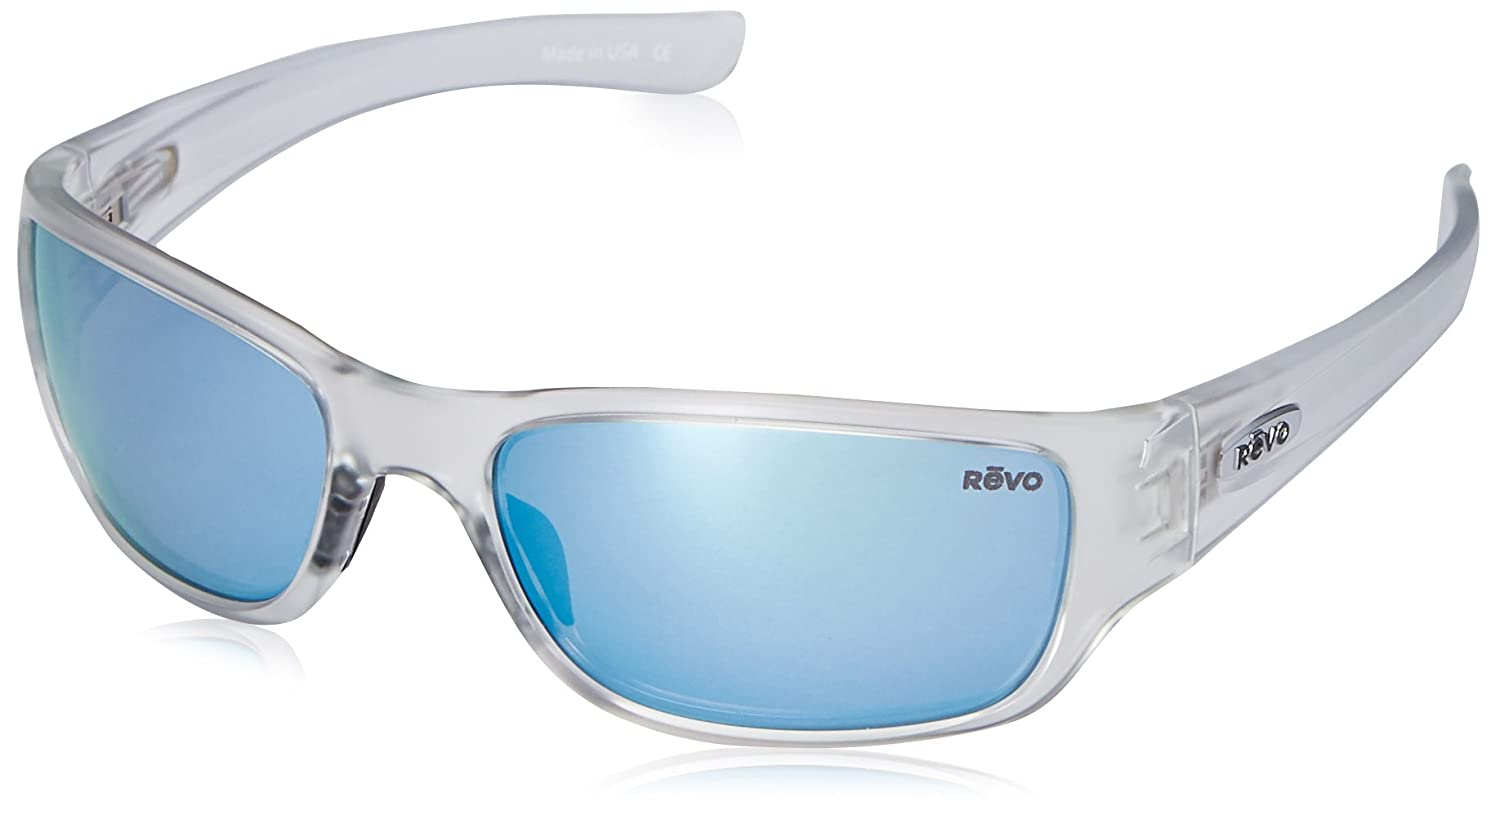 80b65a4966 Amazon.com  Revo Heading RE 4058 09 BL Polarized Rectangular Sunglasses